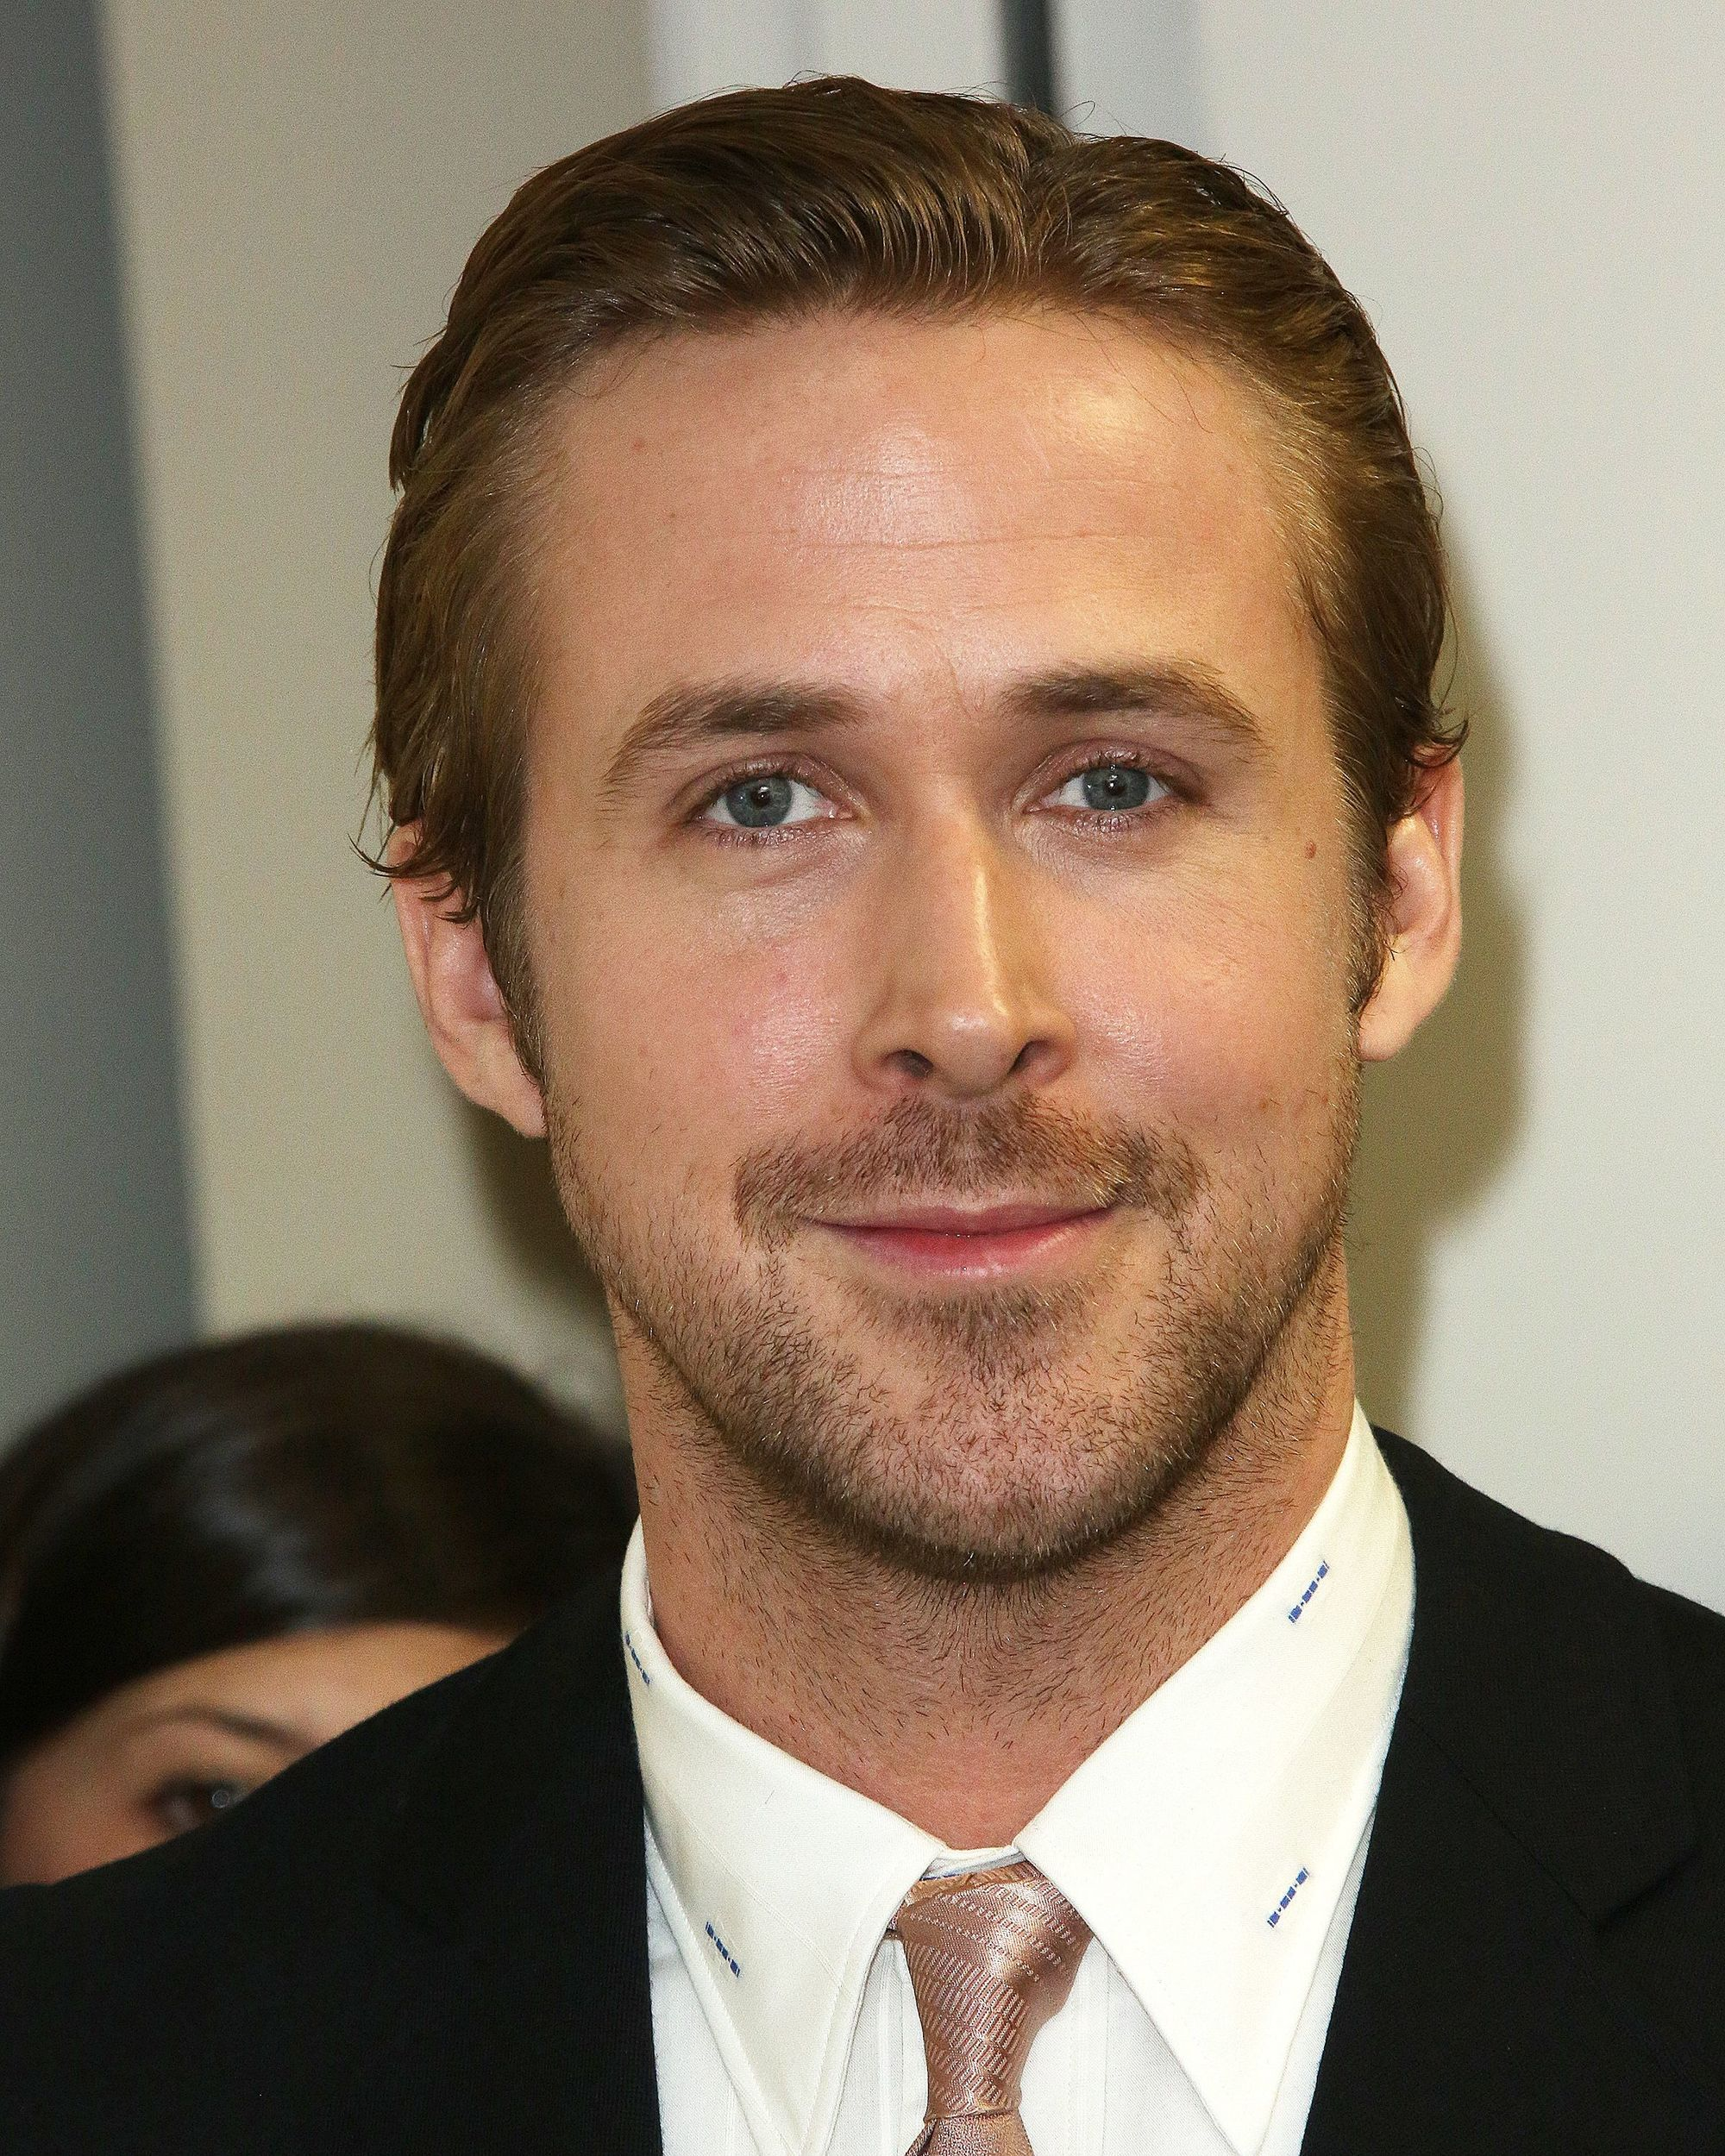 Ryan Gosling haircut: Ryan Gosling with a smart brushed back hairstyle, with short facial hair and wearing a suit and tie